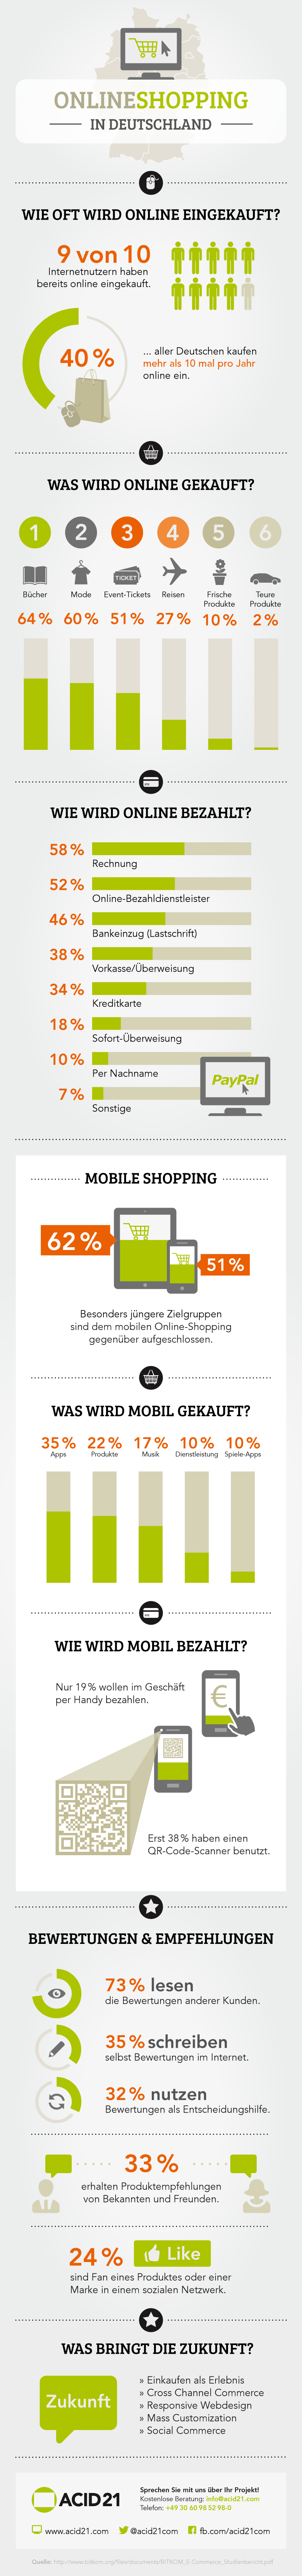 infografik online shopping in deutschland ein. Black Bedroom Furniture Sets. Home Design Ideas